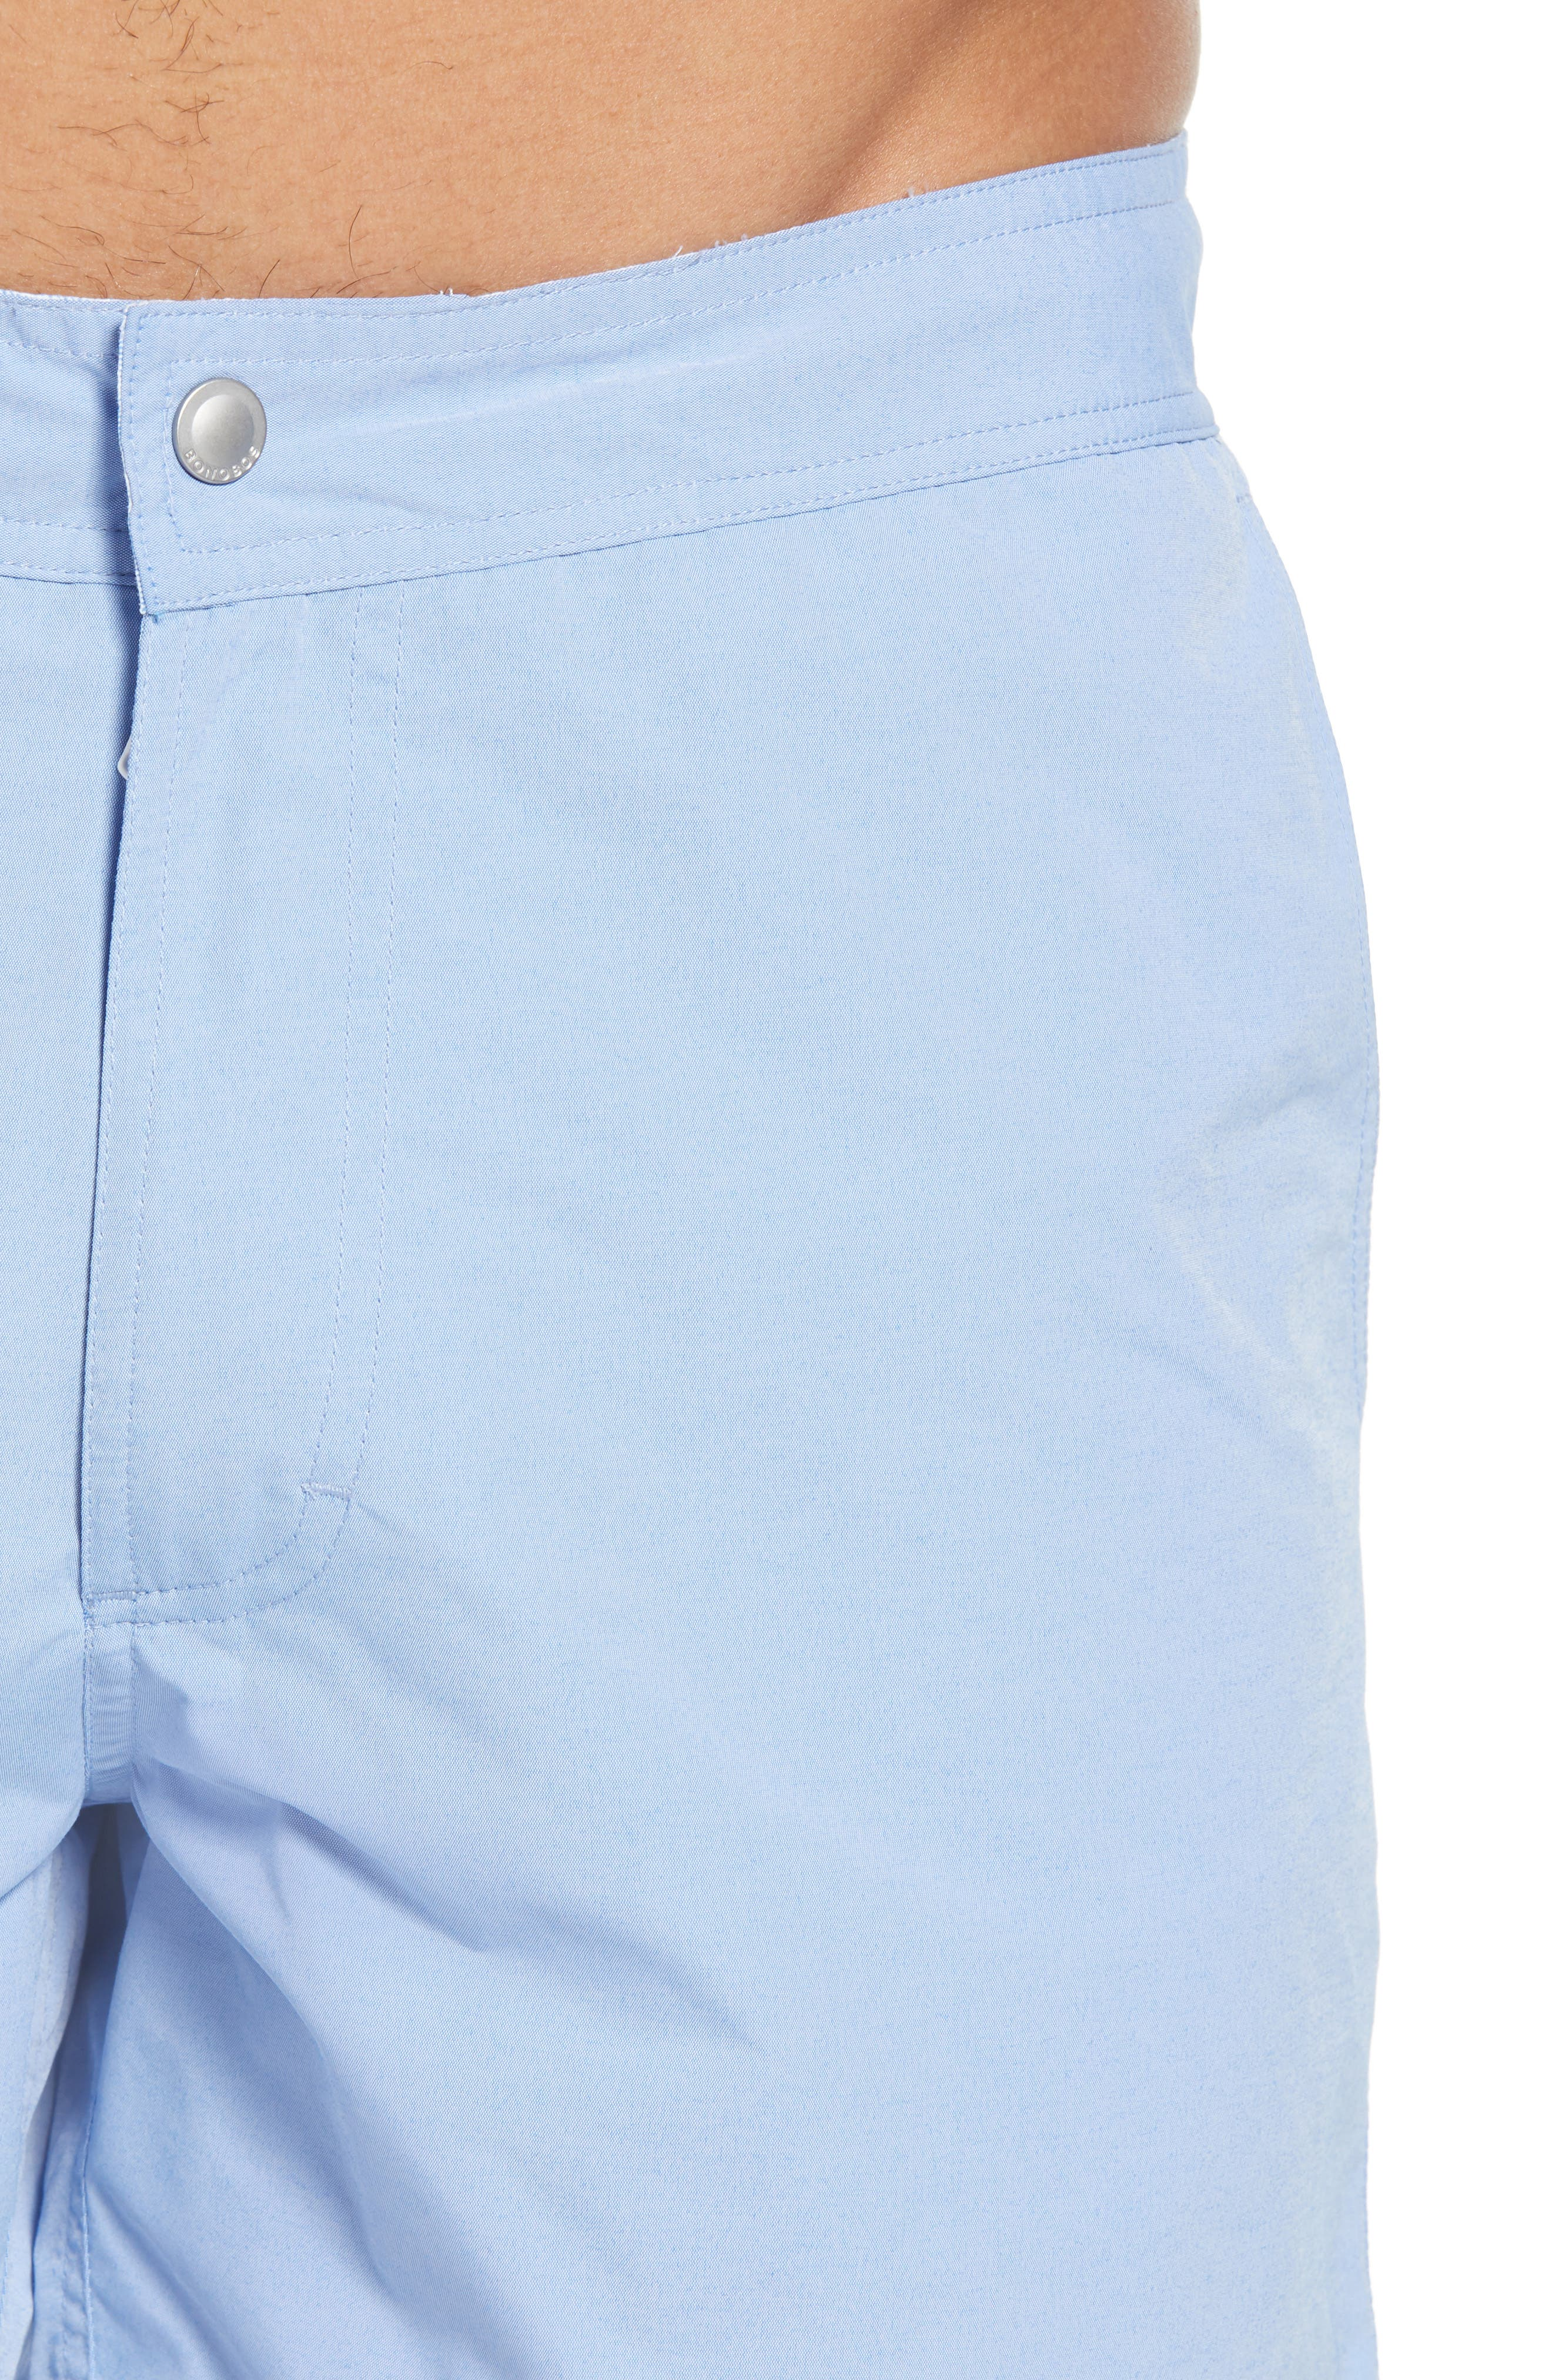 Solid 5-Inch Swim Trunks,                             Alternate thumbnail 4, color,                             Blue Chambray